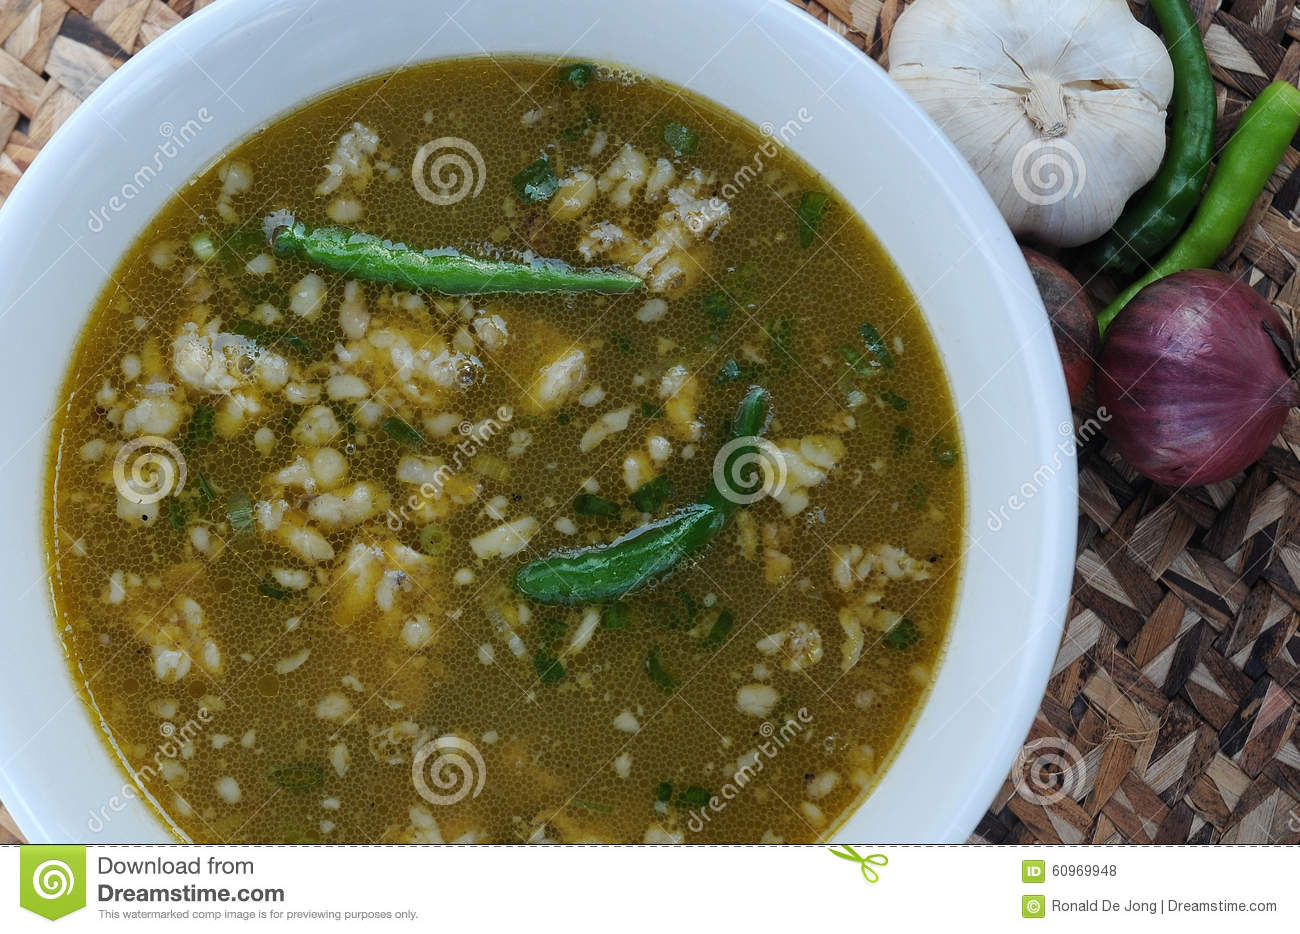 Food From The Philippines Papaitan Beef Innards Soup Dish Stock Photo Image Of Asian Roasted 60969948